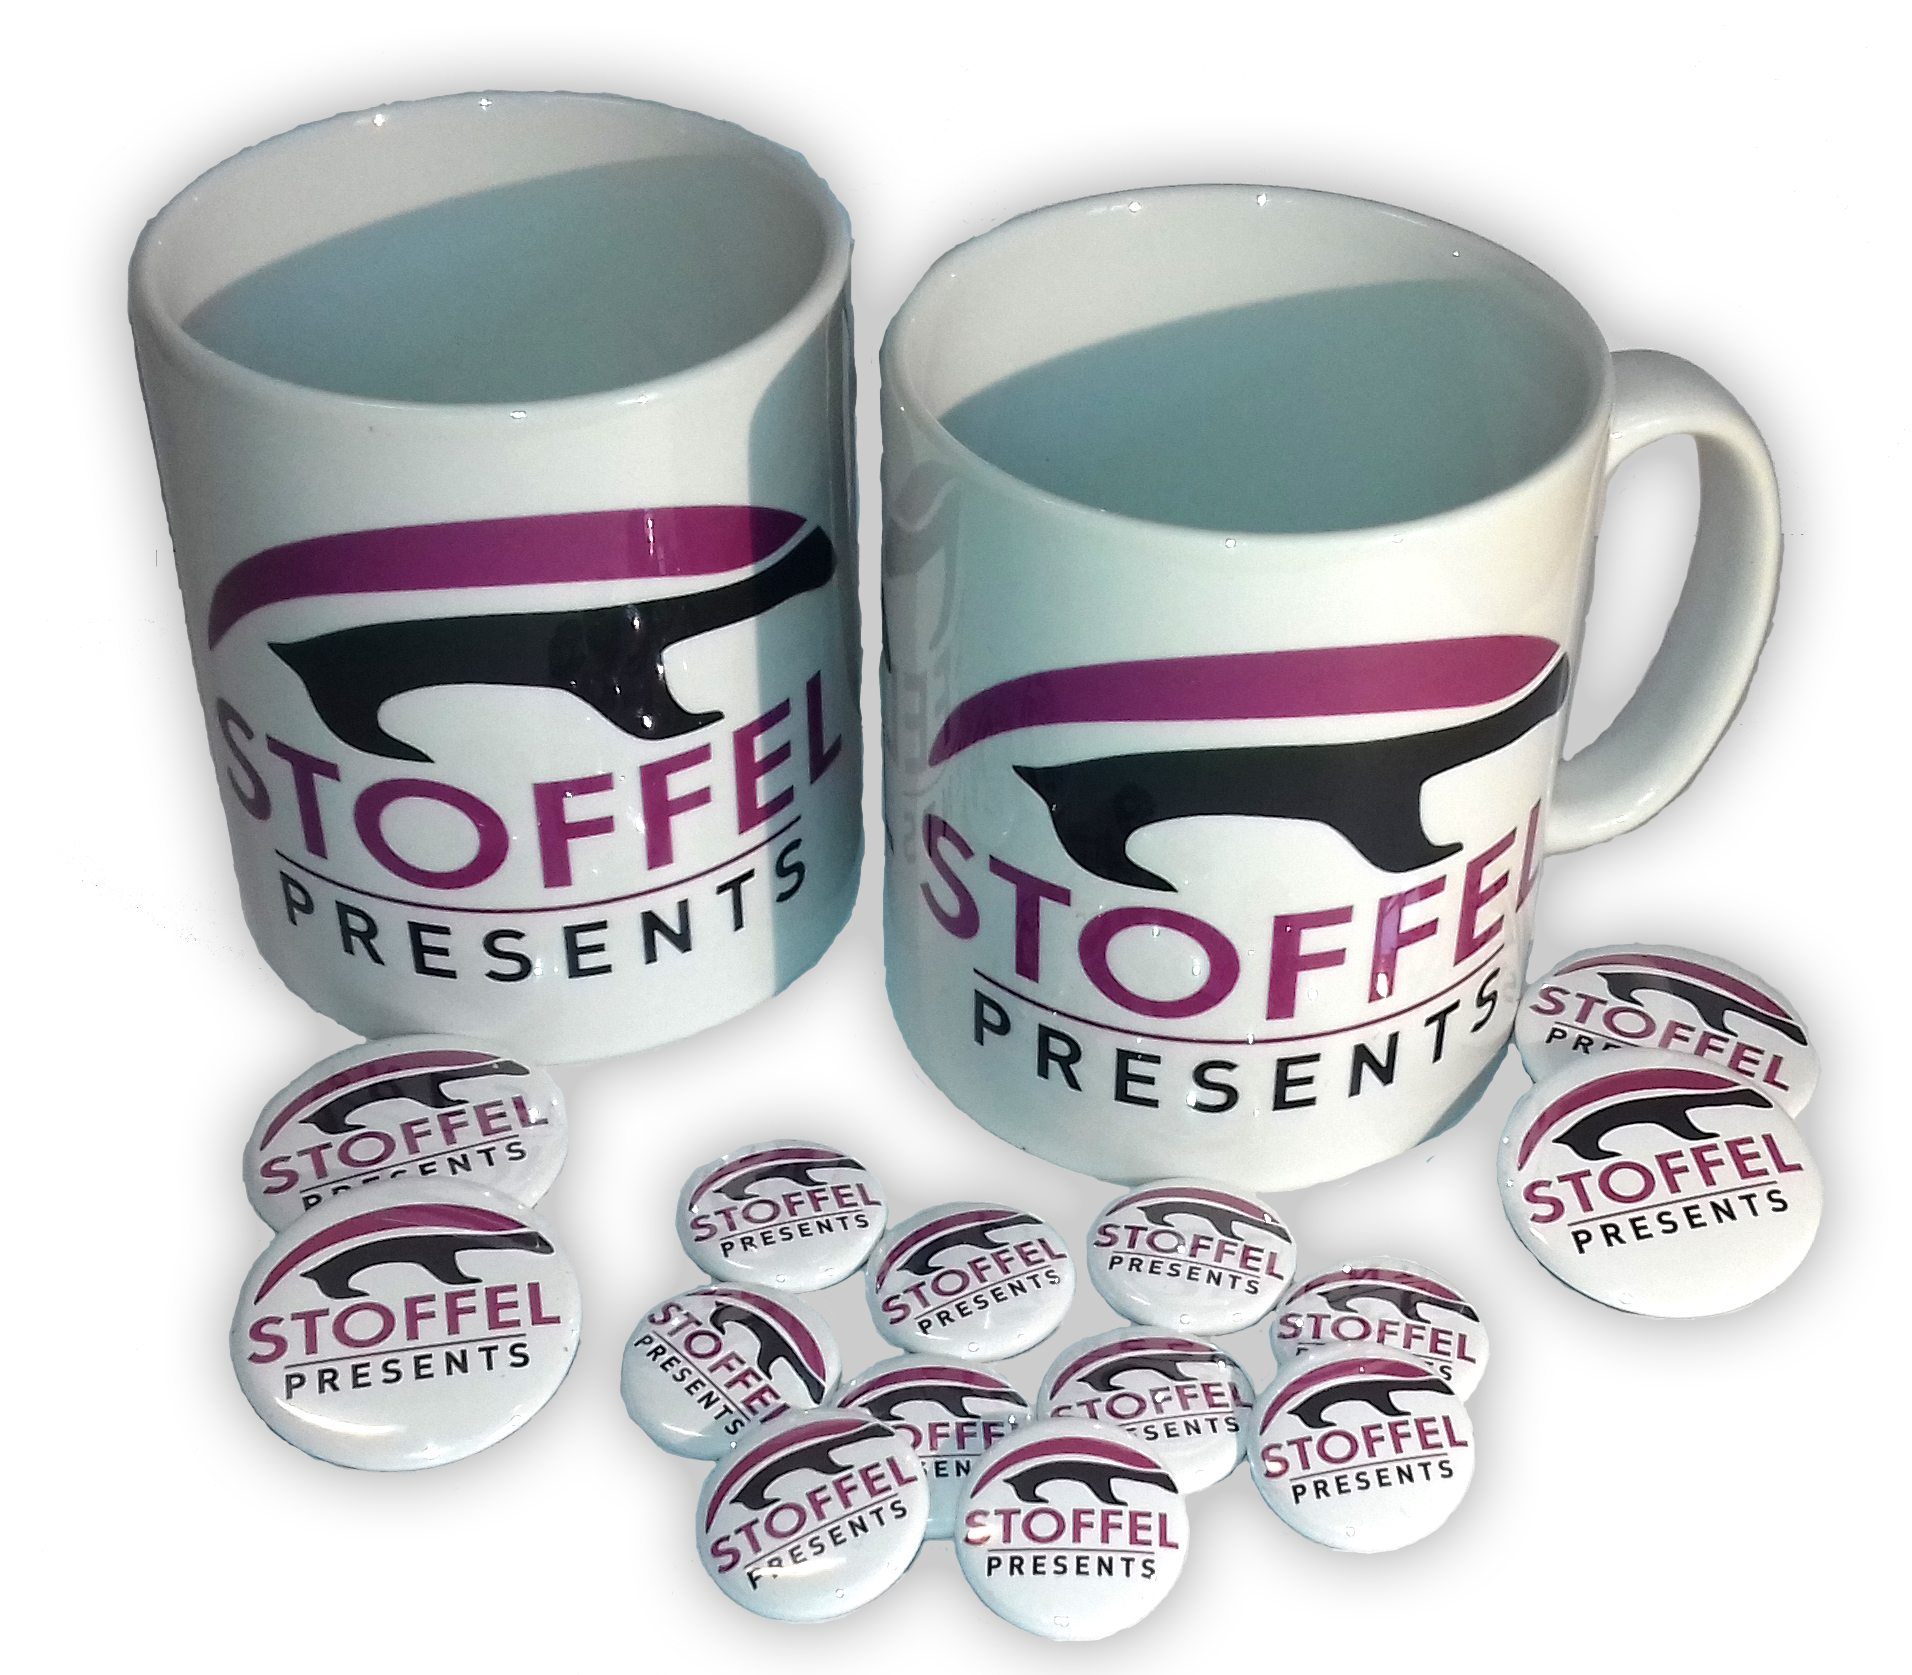 Custom Printed Tea & Coffee Mugs - Stoffel Presents